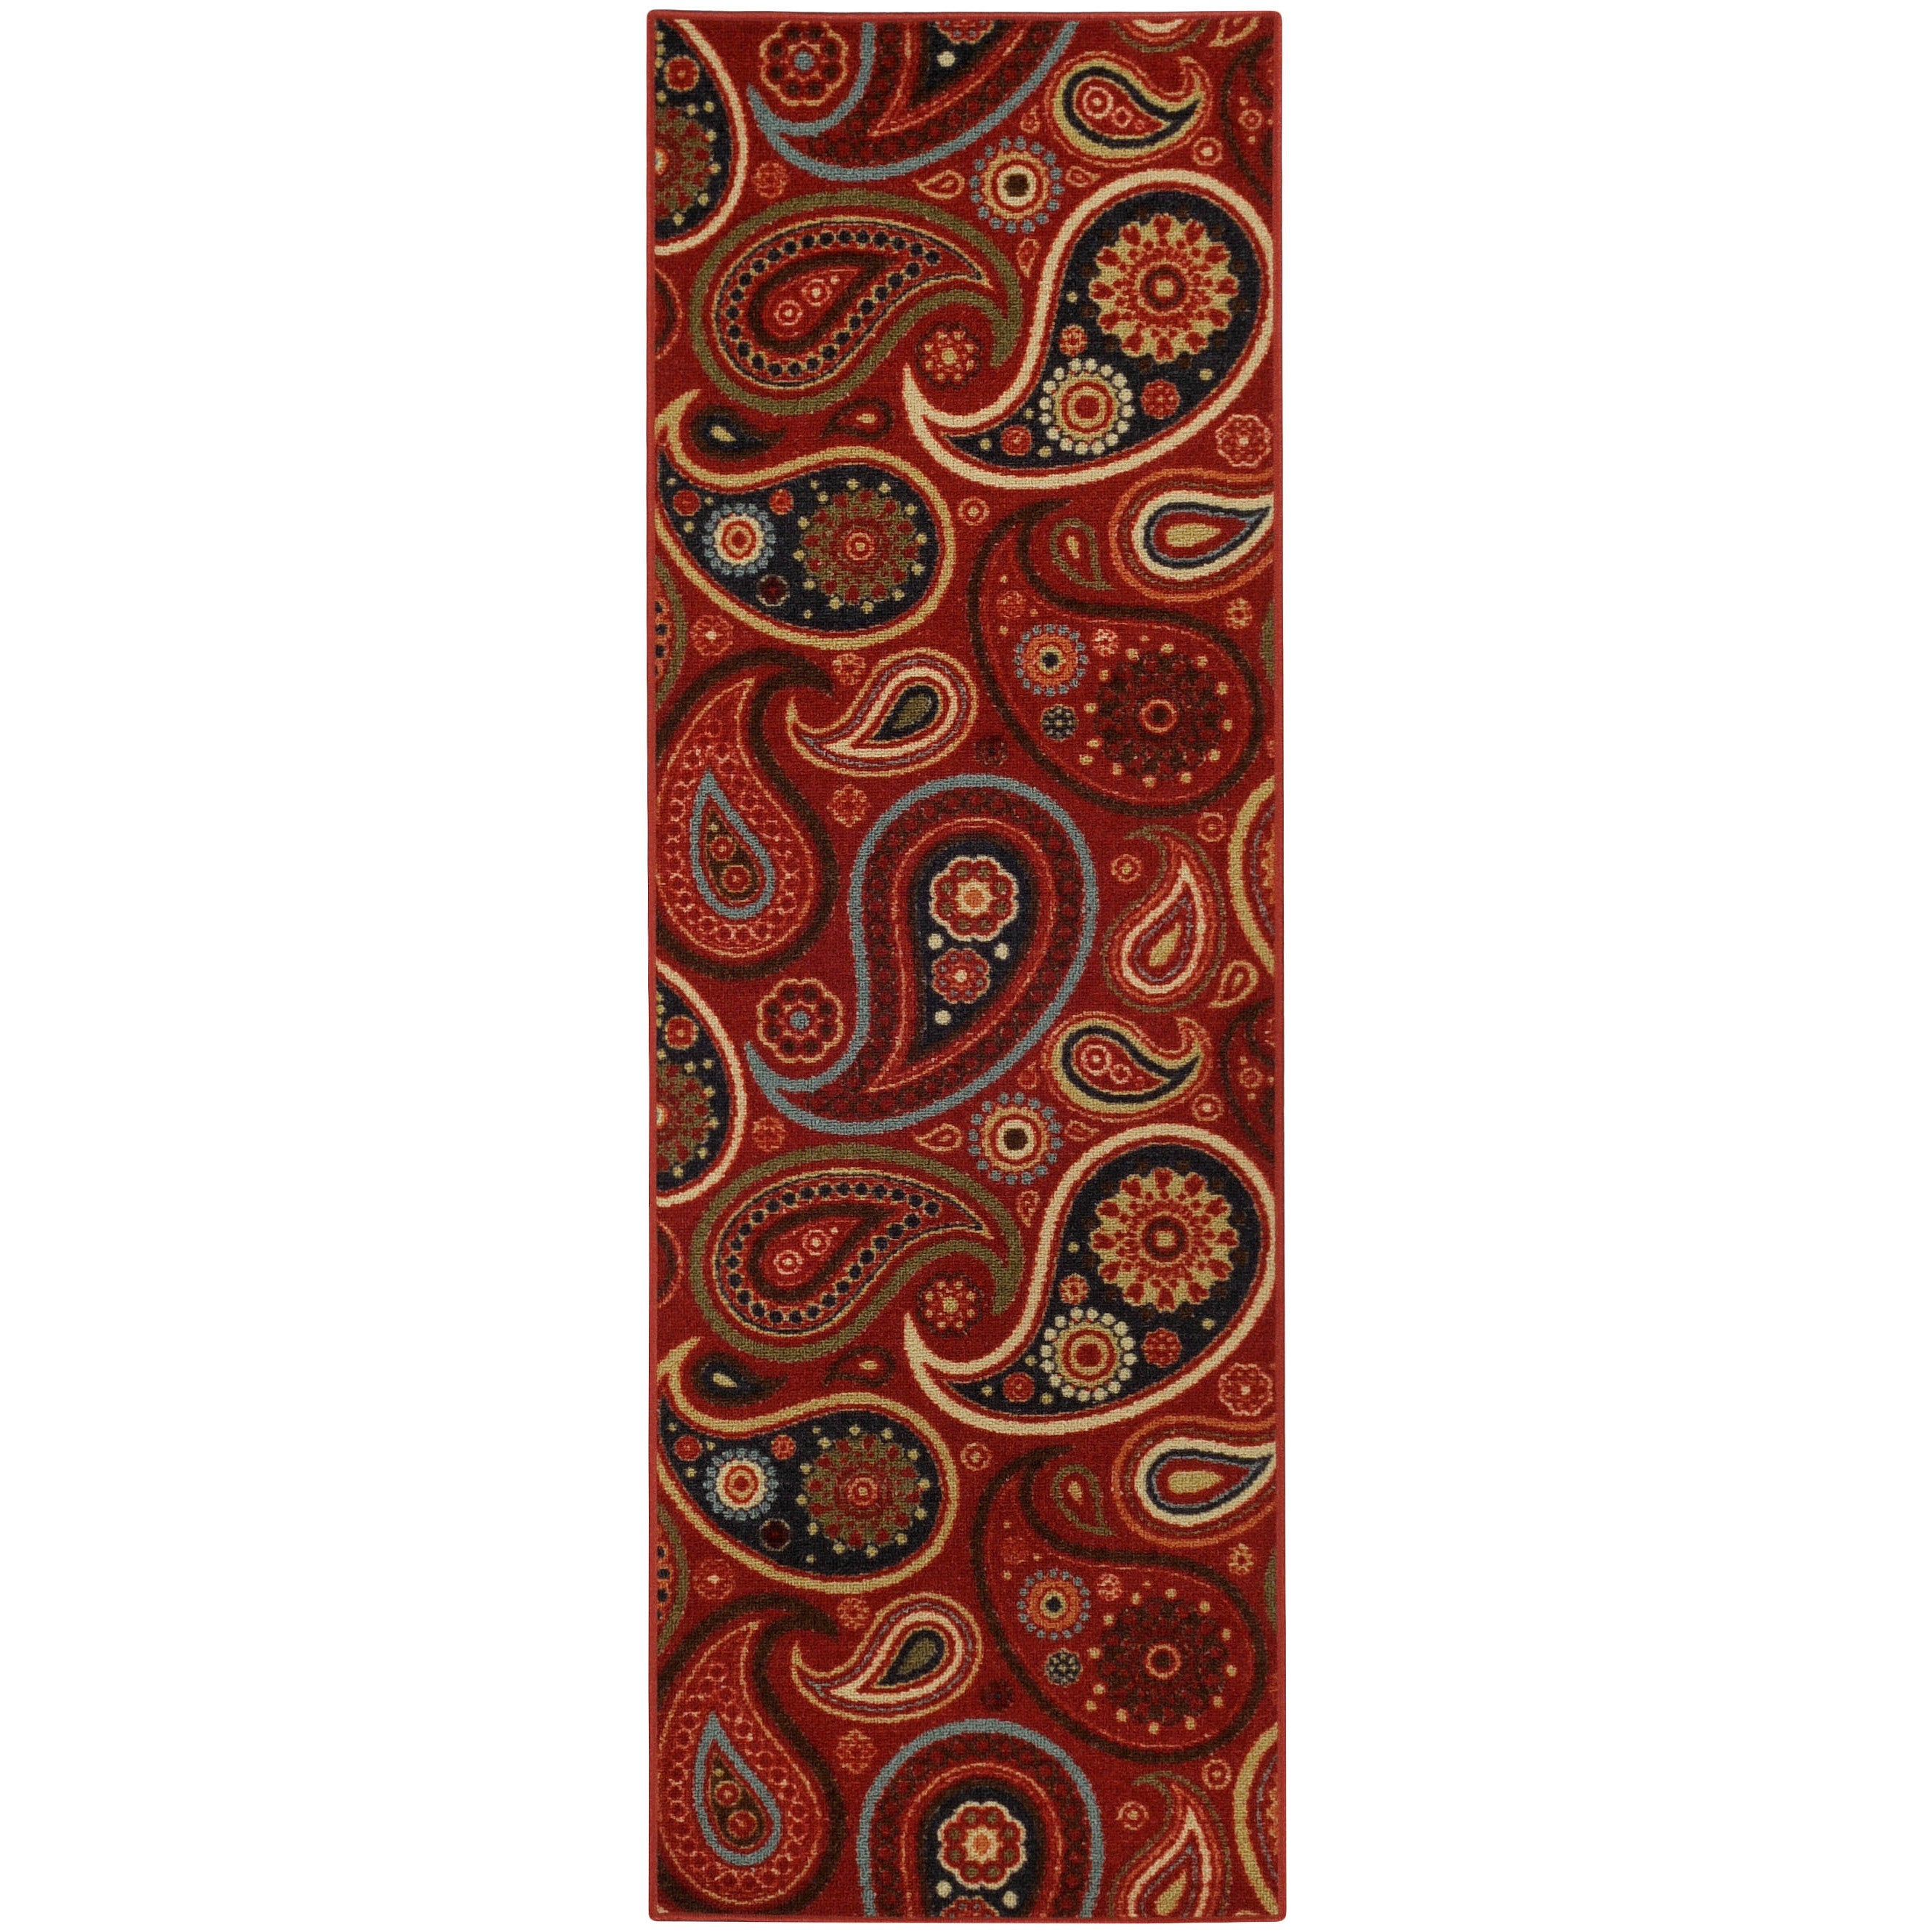 "Rubber Back Red Paisley Floral Non-skid Runner Rug (22"" x 6'9) at Sears.com"